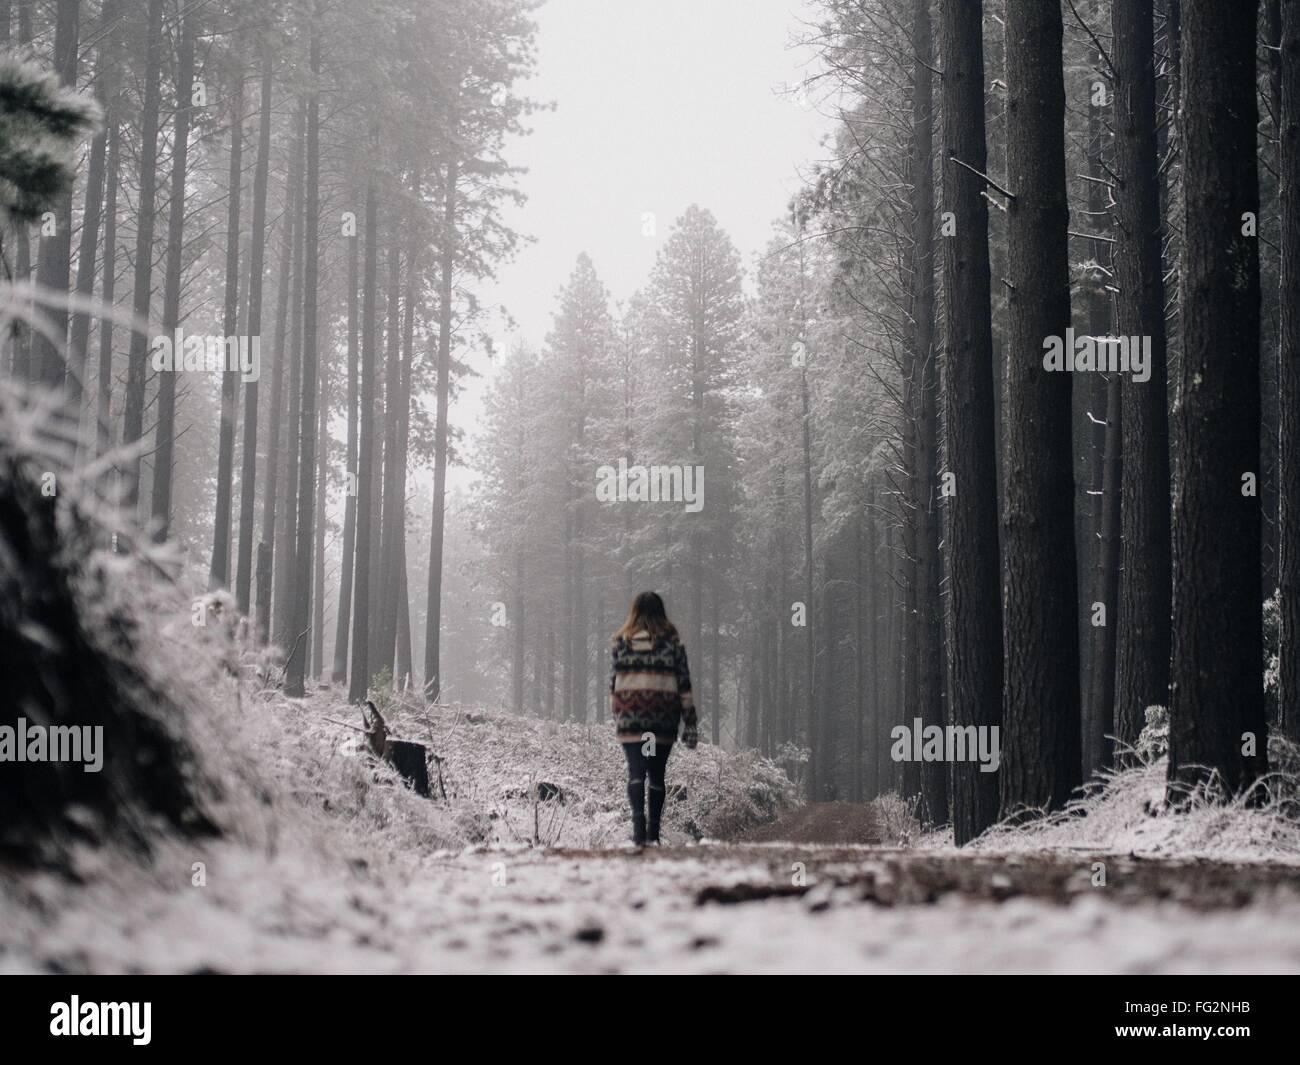 Rear View Of Woman Walking In Forest Stock Photo